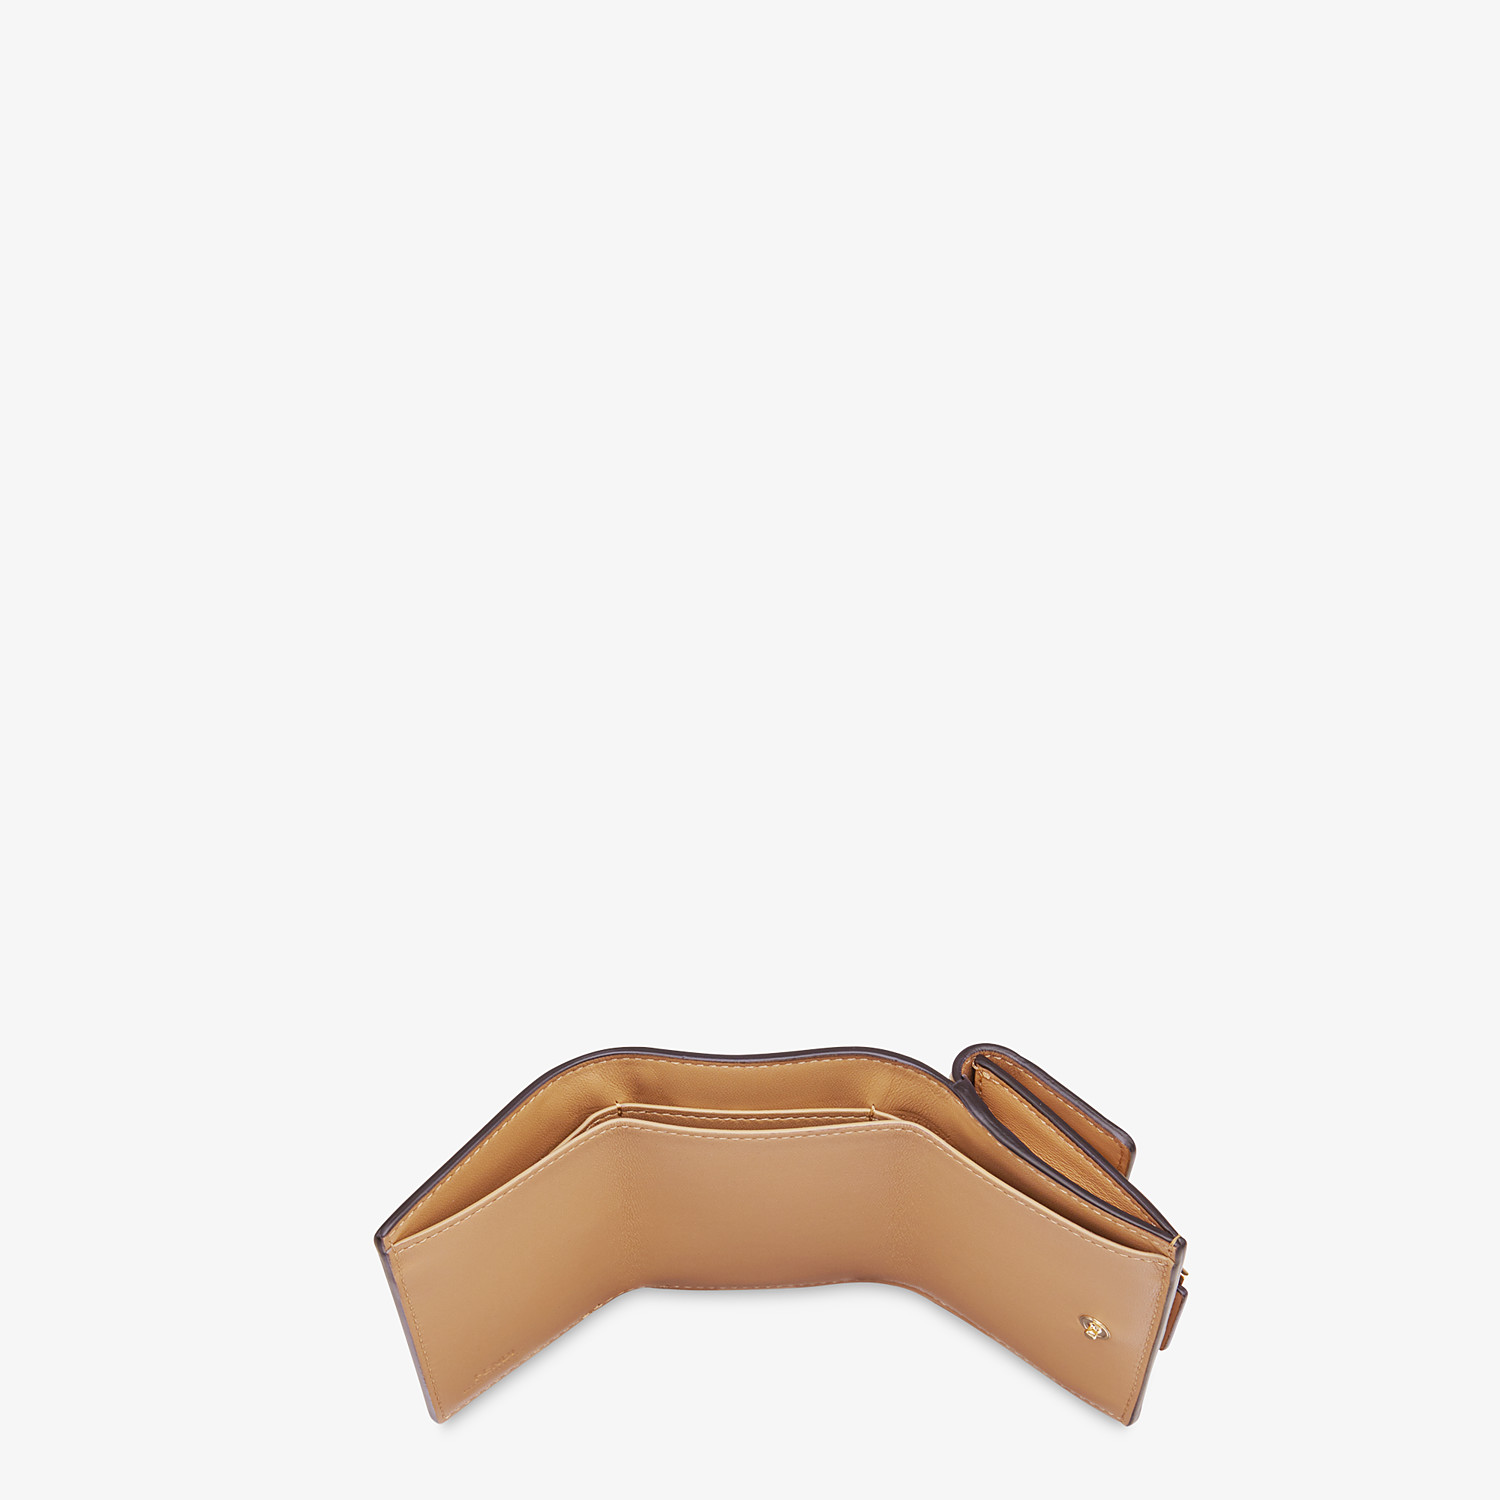 FENDI MICRO TRIFOLD - Beige nappa leather wallet - view 4 detail